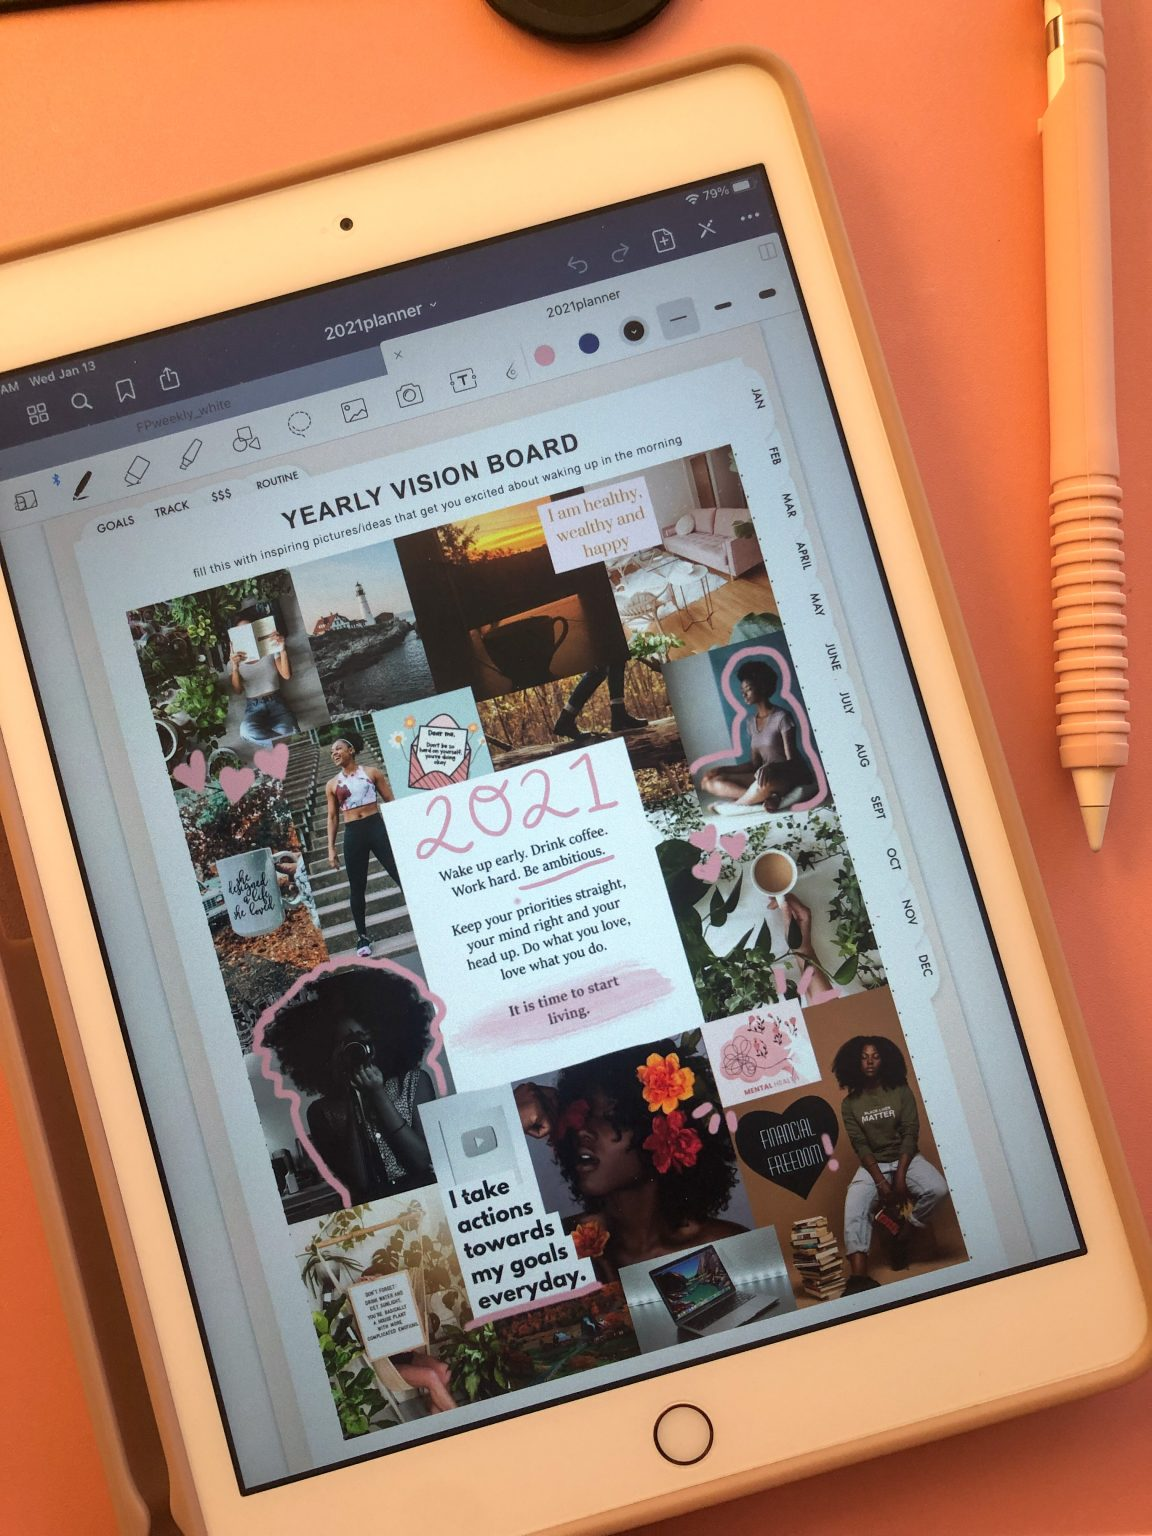 Example of a digital vision board on an iPad from AmbitiouslyCierra